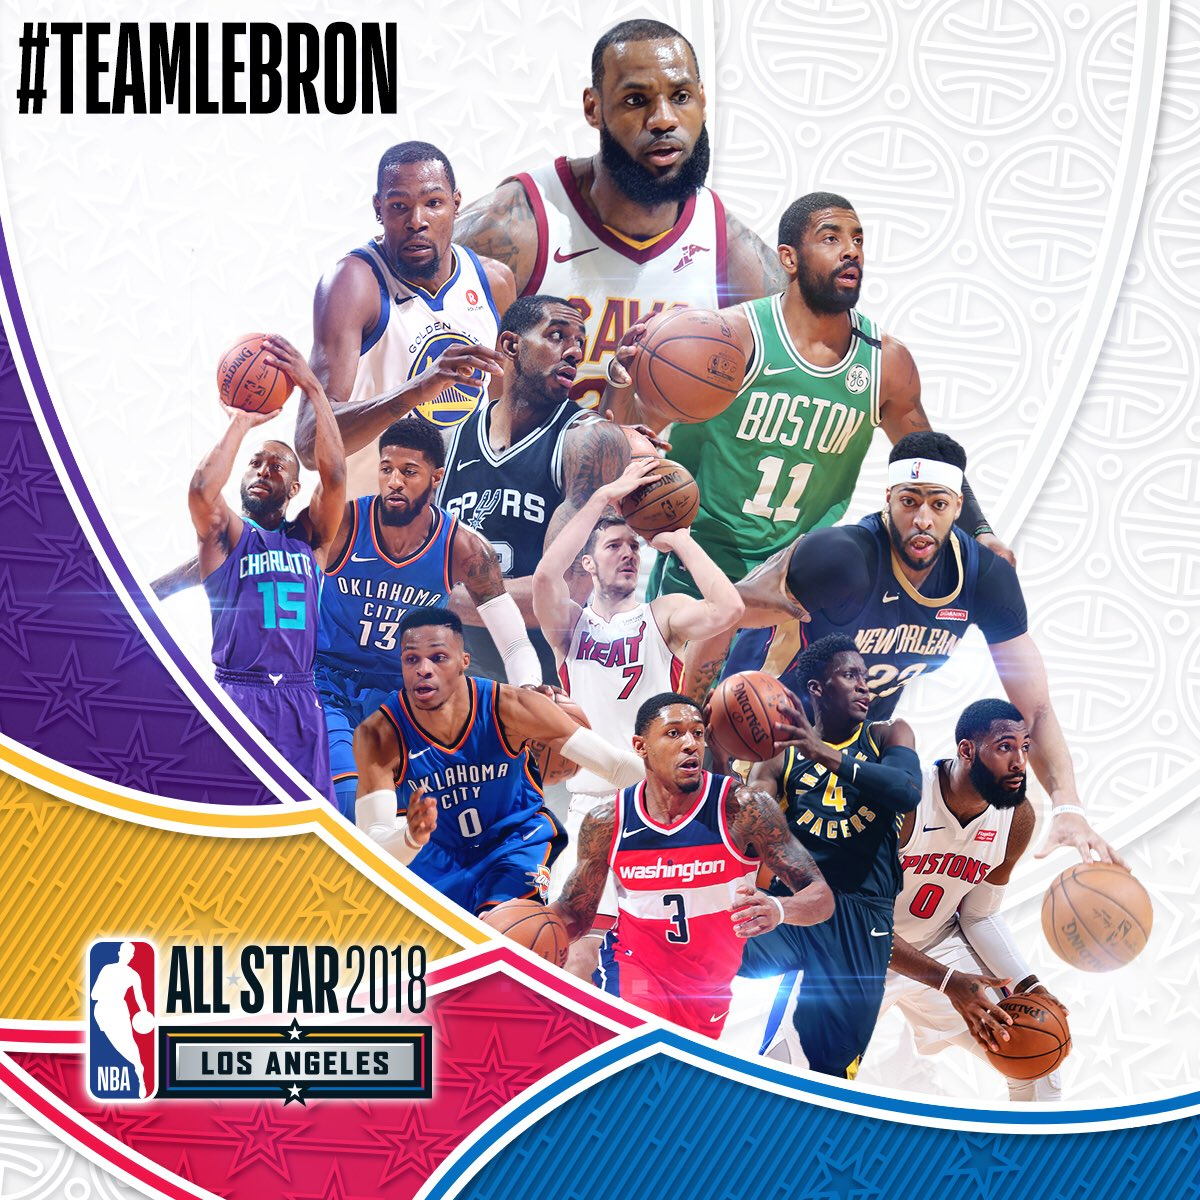 The #NBAAllStar game is my back garden in LA this year ! I'm going for #TeamLeBron.....who do you have ? @NBAUK https://t.co/yWU4u0MQYw